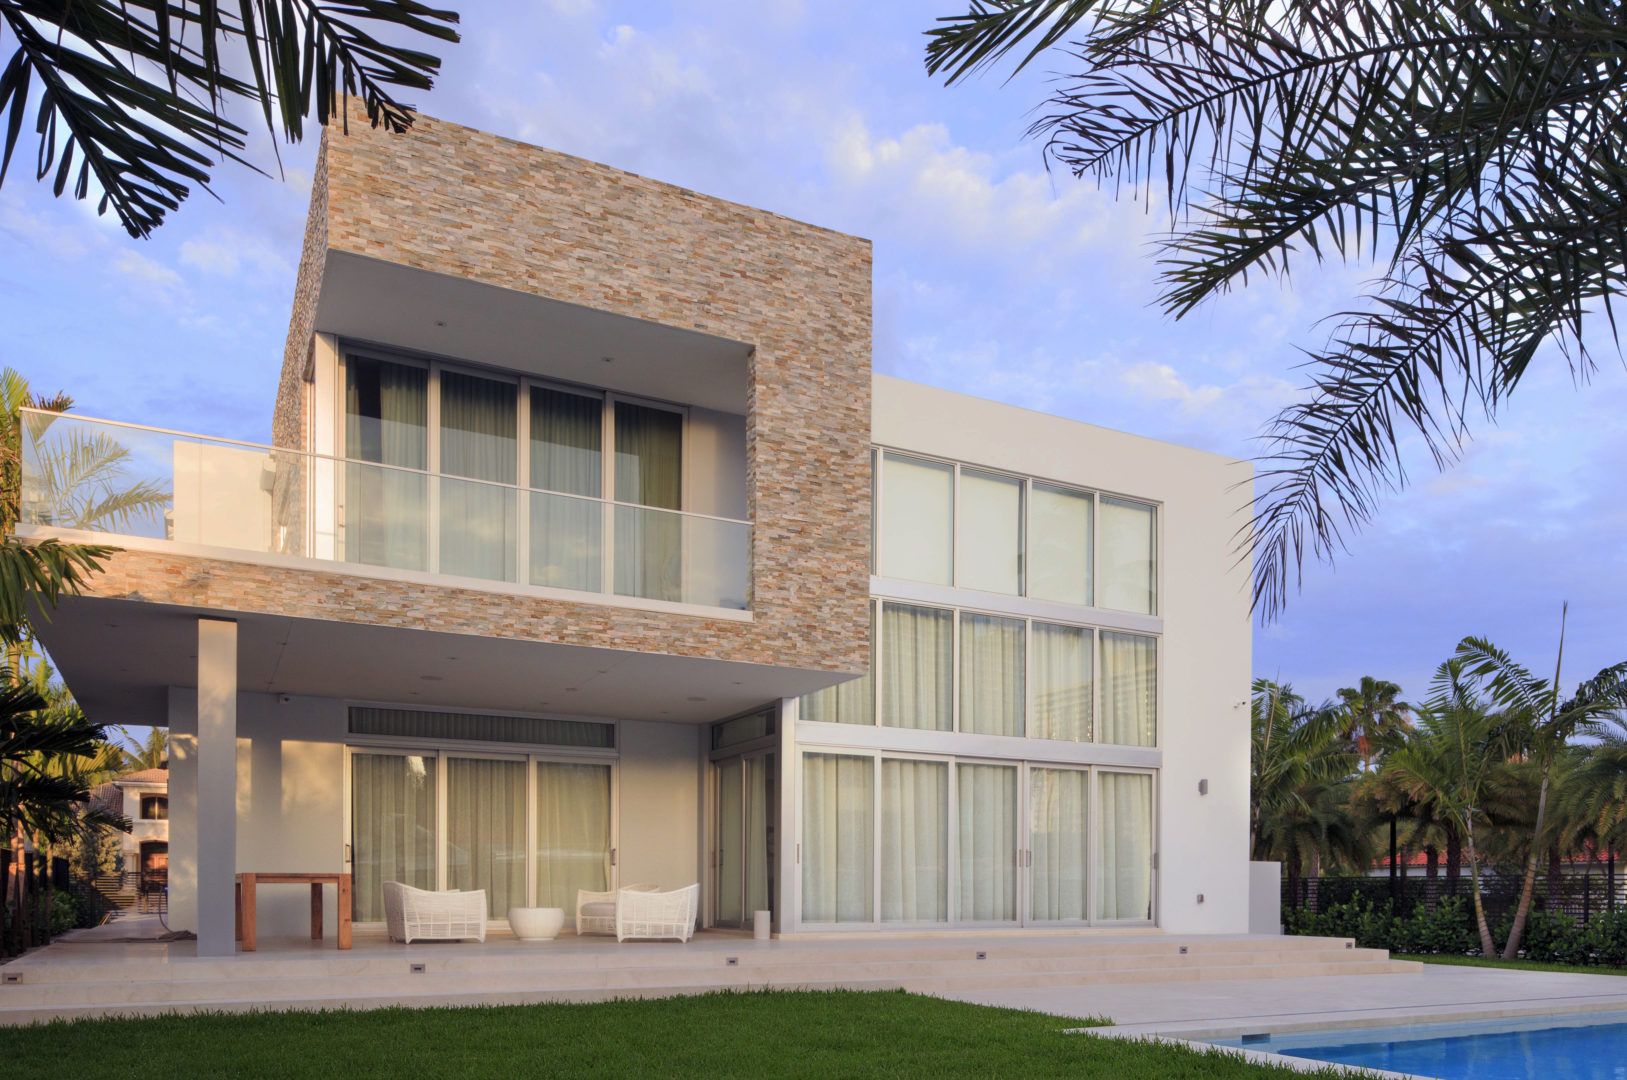 House construction miami florida custom builder contractor luxury modern residential back pool yard landscape grass windows